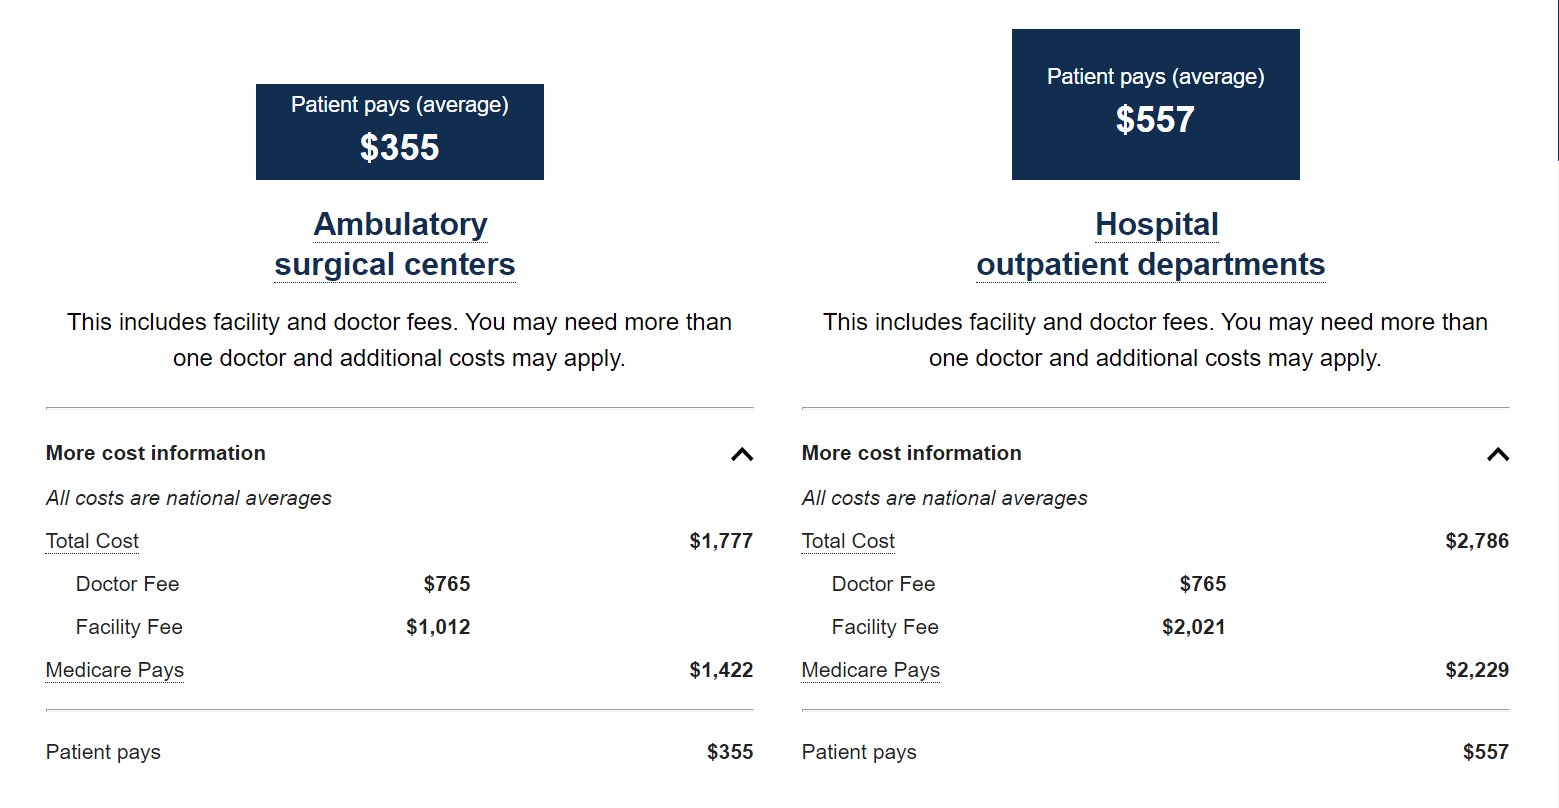 cataract surgery cost estimate on medicare, screenshot from medicare.gov December 2020